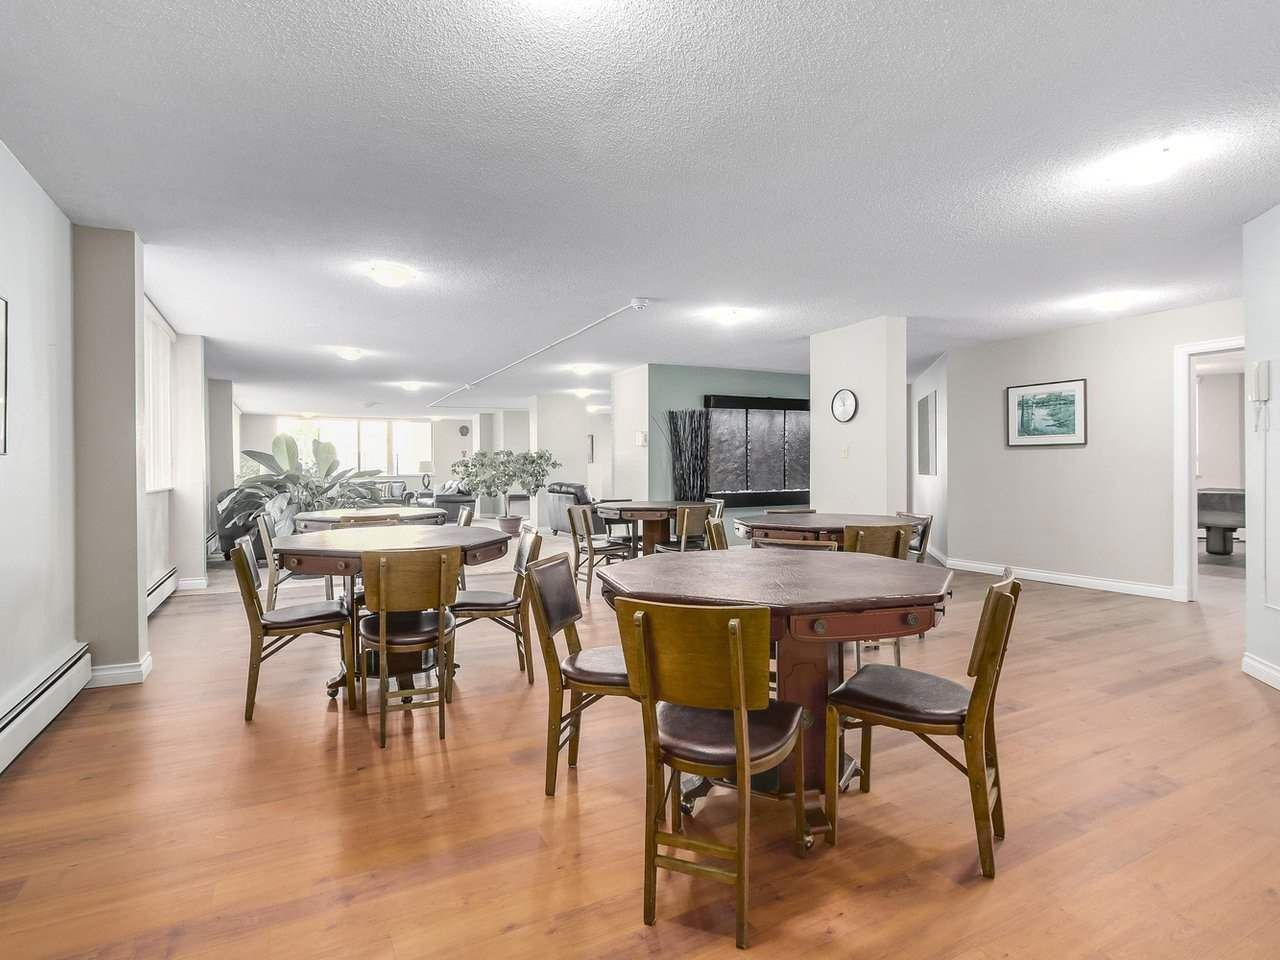 """Photo 14: Photos: 304 1480 FOSTER Street: White Rock Condo for sale in """"White Rock Square 1"""" (South Surrey White Rock)  : MLS®# R2231627"""